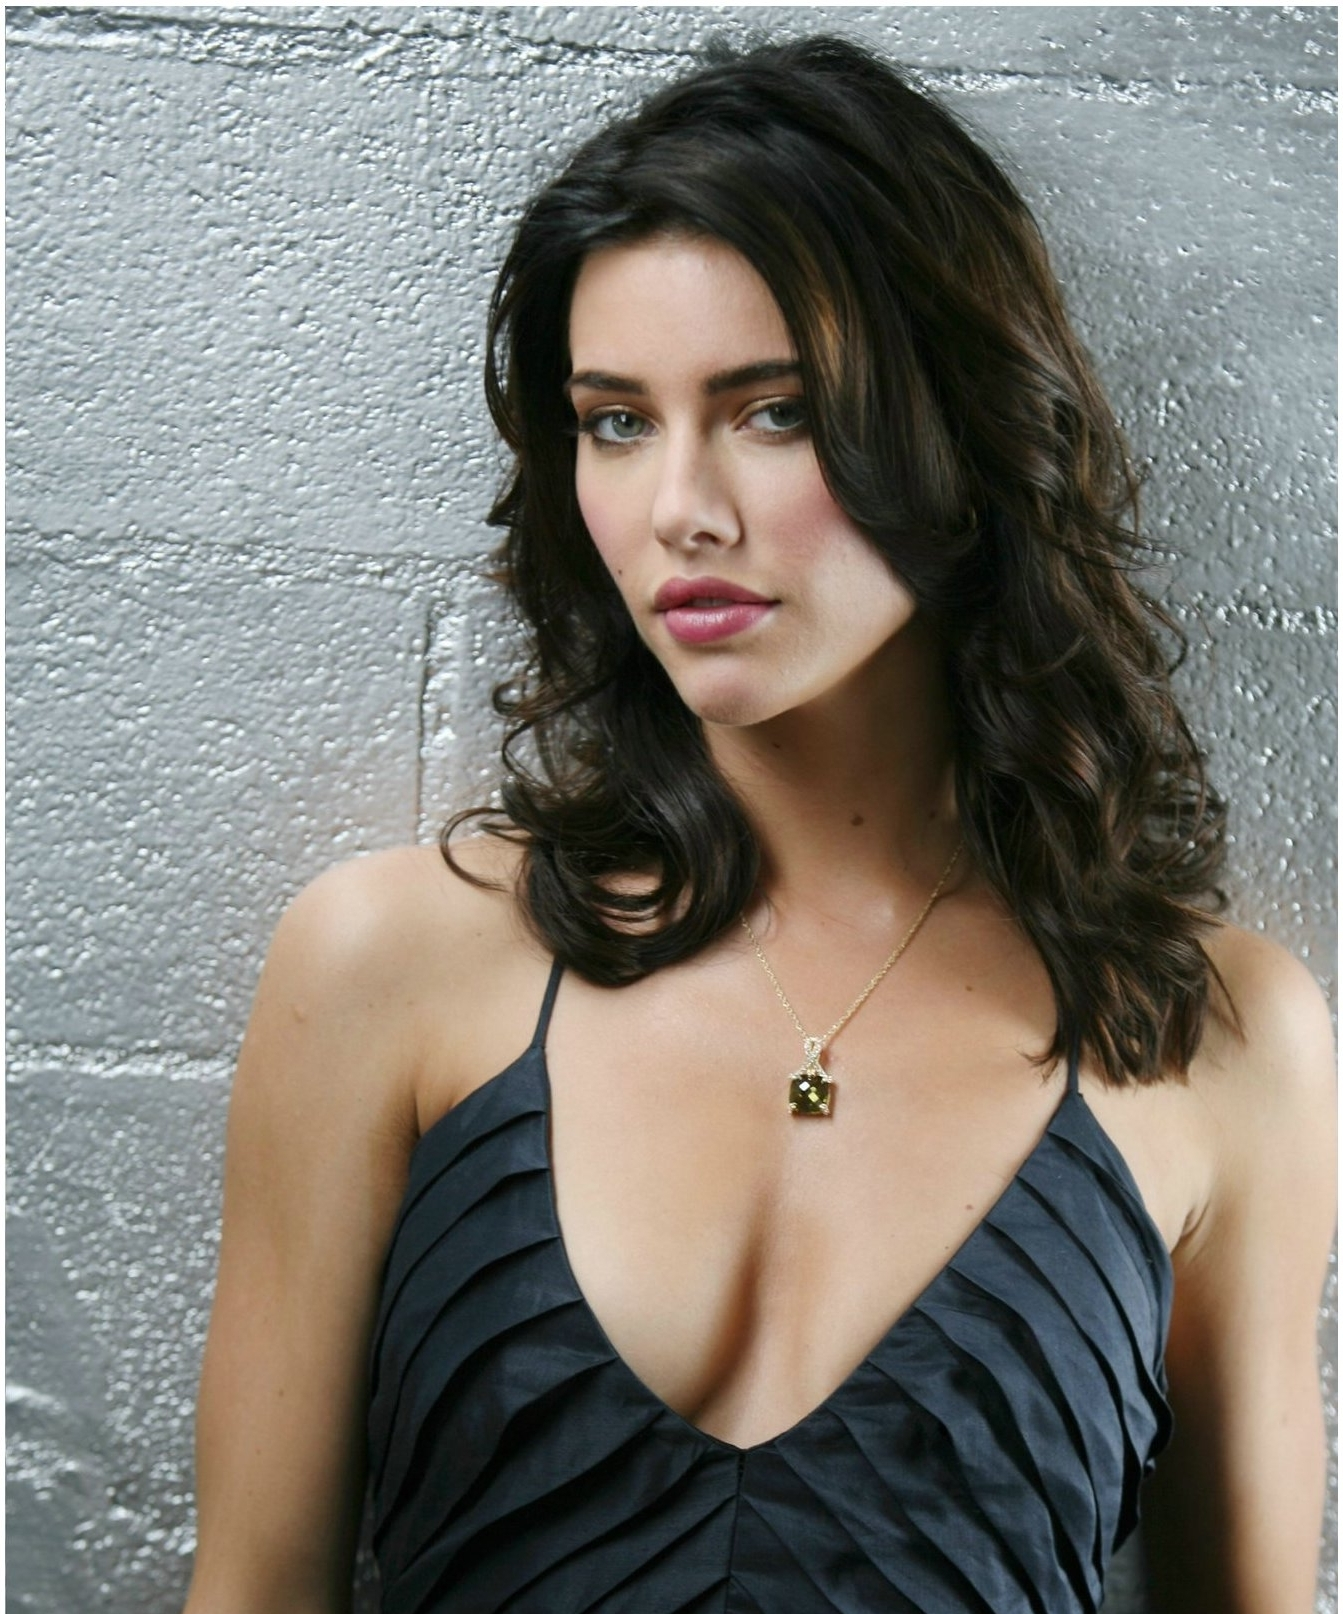 Hacked Jacqueline MacInnes Wood nude (85 foto and video), Ass, Sideboobs, Feet, butt 2006